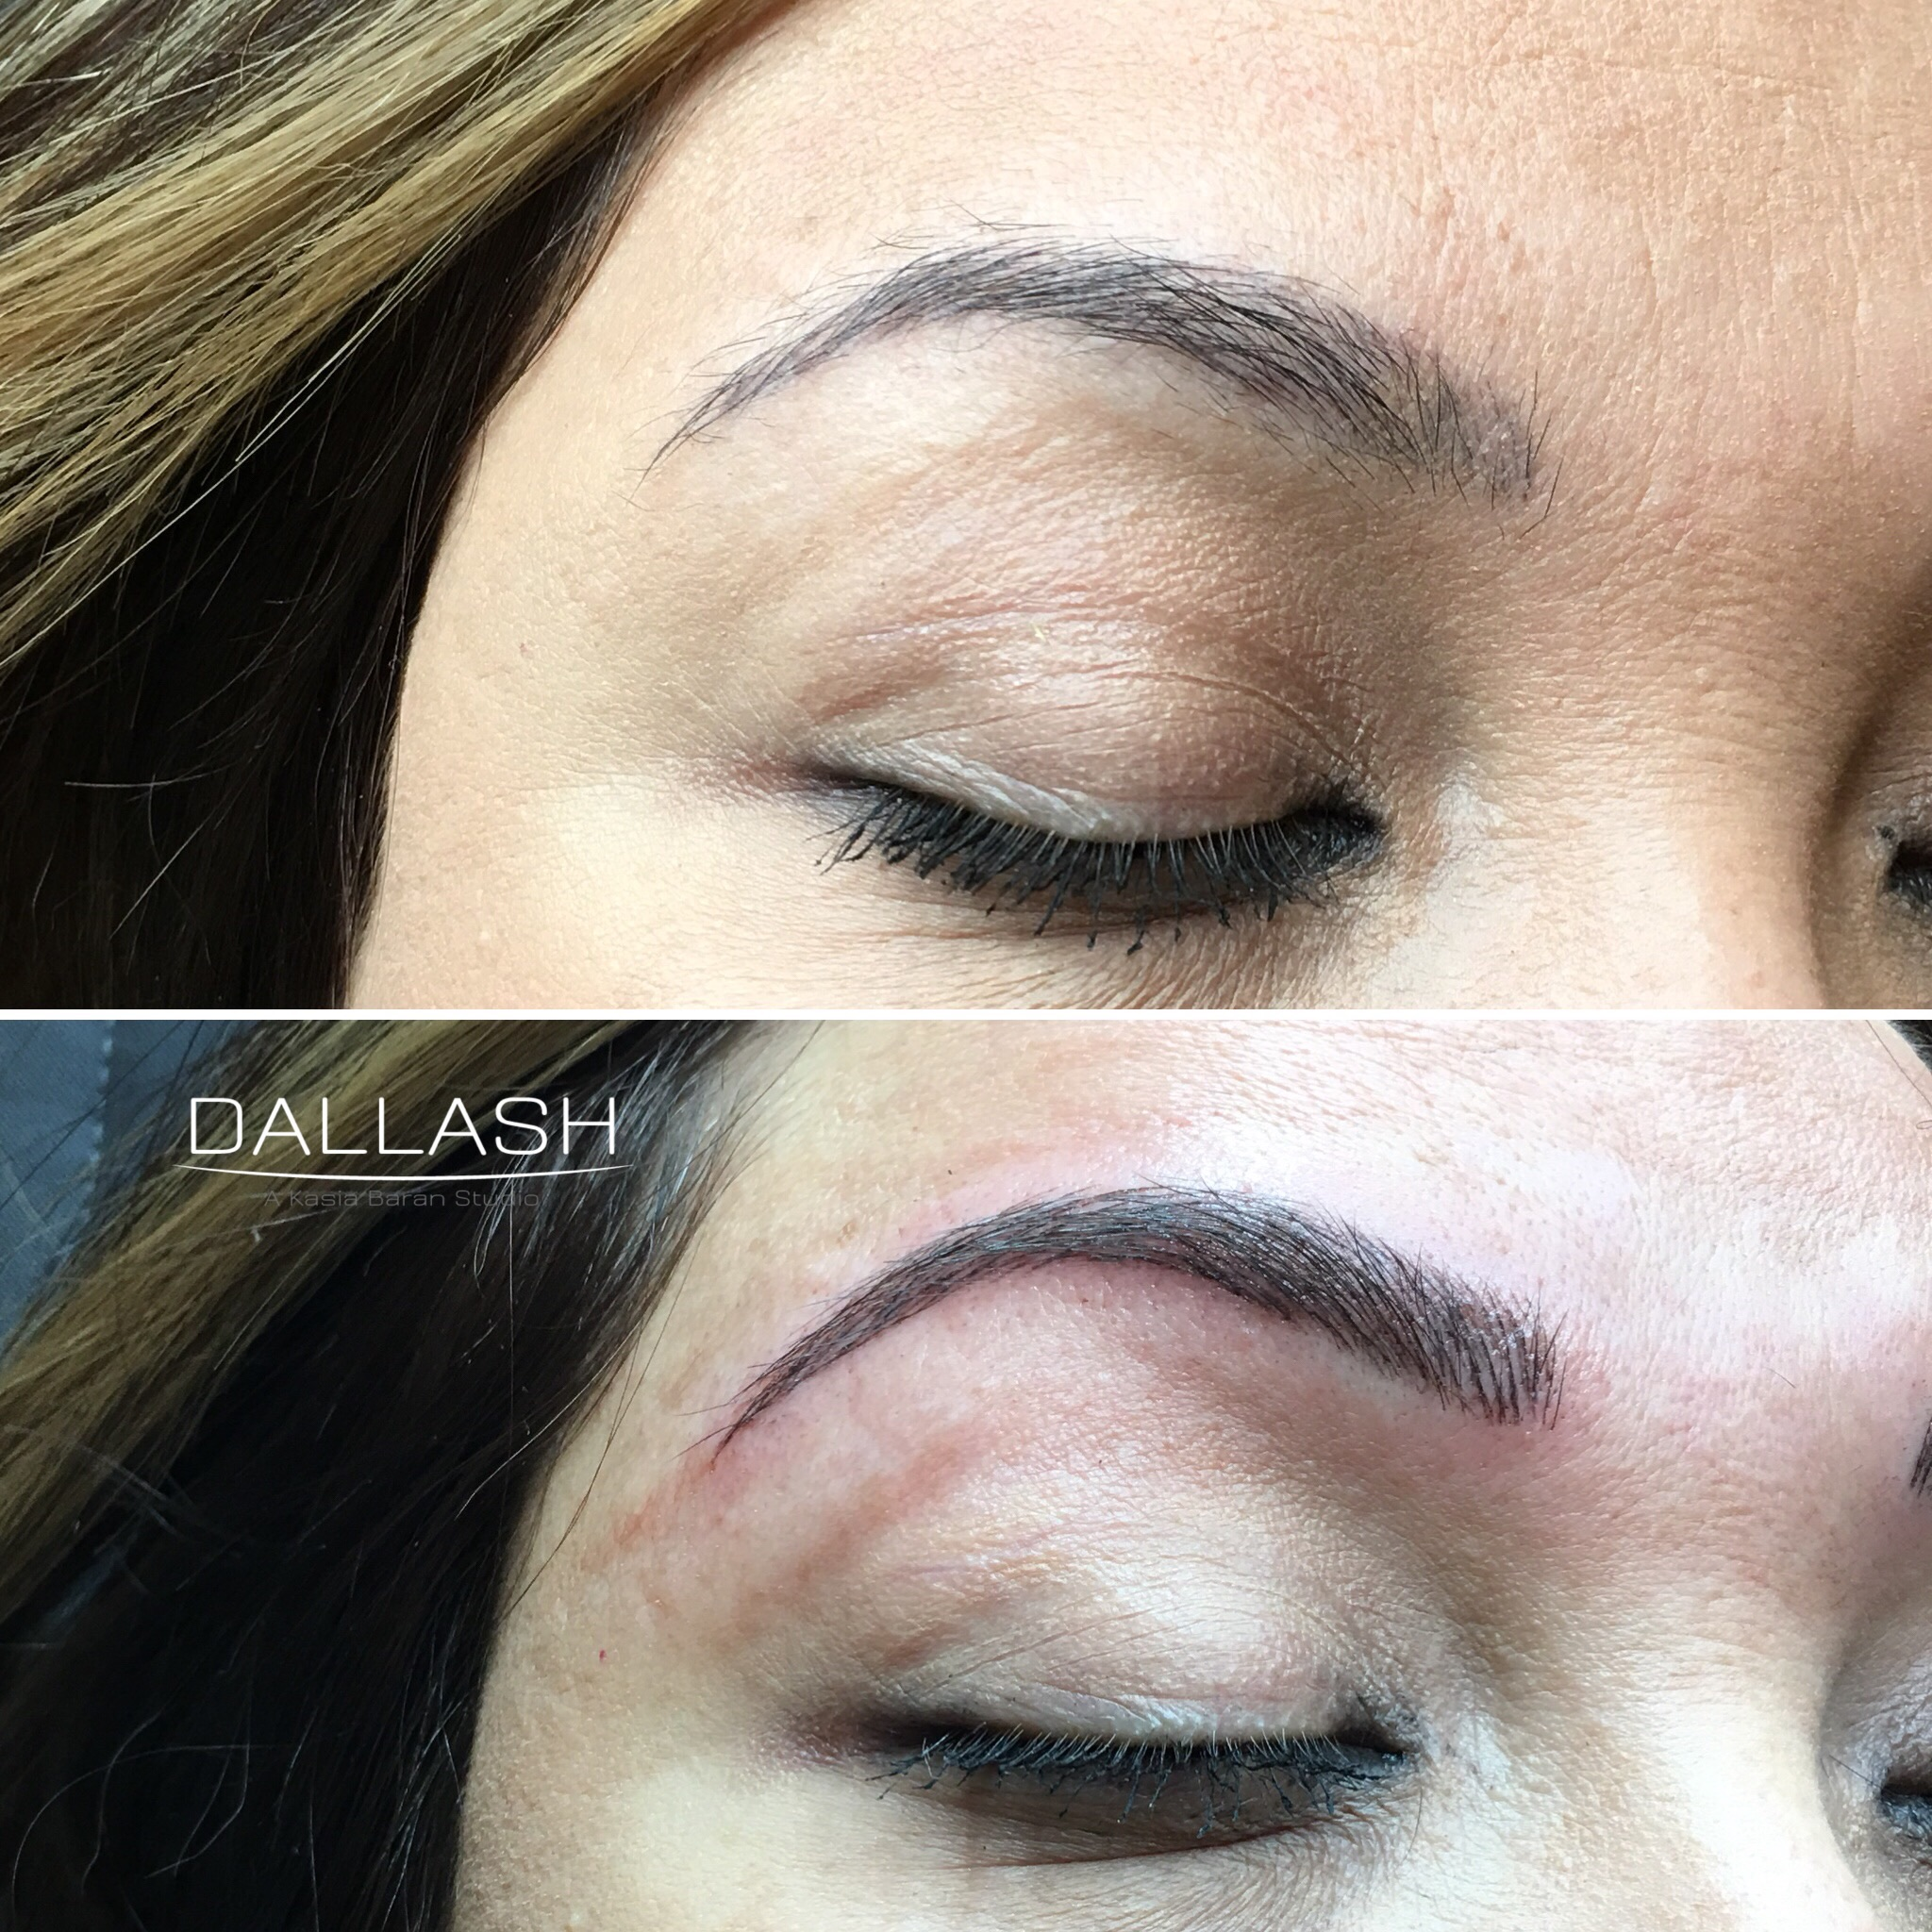 MICROBLADING-DALLAS-SEMIPERMANENET BROWS-EYEBROWS-3DBROWS-MICROBLADING-DALLAS-DALLASHSTUDI0.JPG-BROW